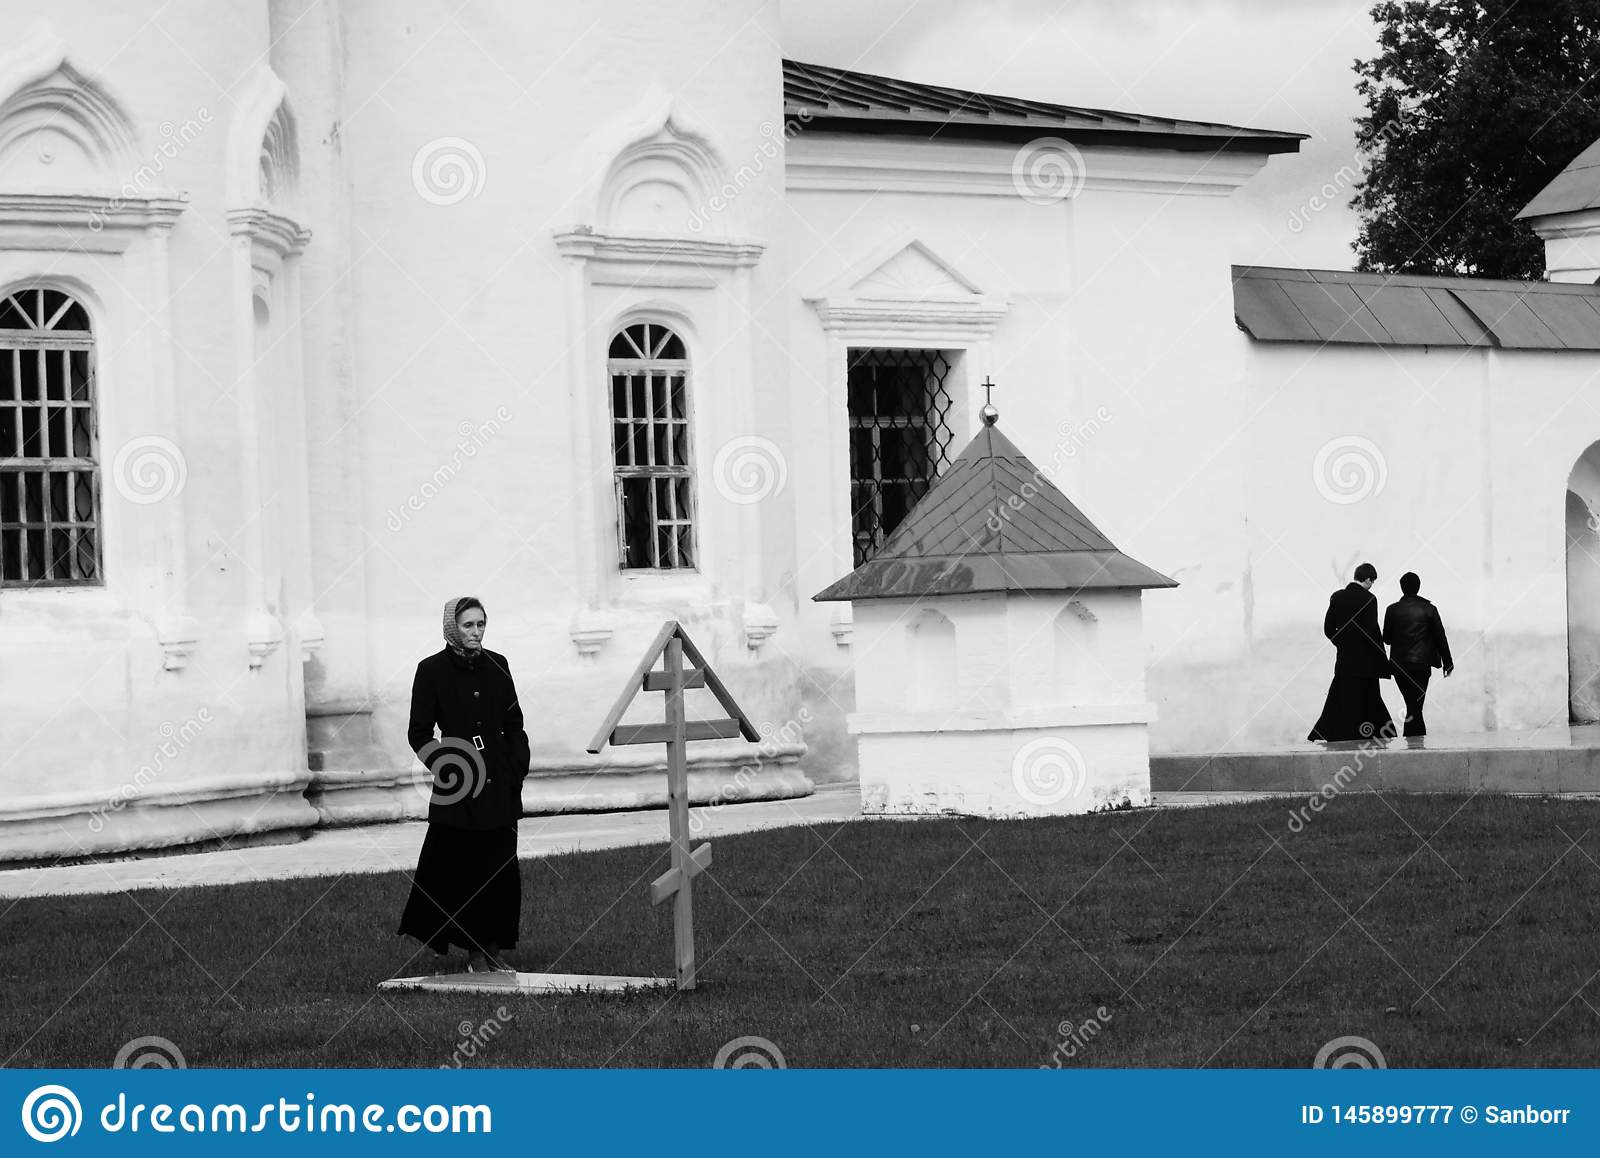 Tobolsk, Russia, 10/05/2016: A woman visits the grave in a monastery. In the background are the priests. Black and white